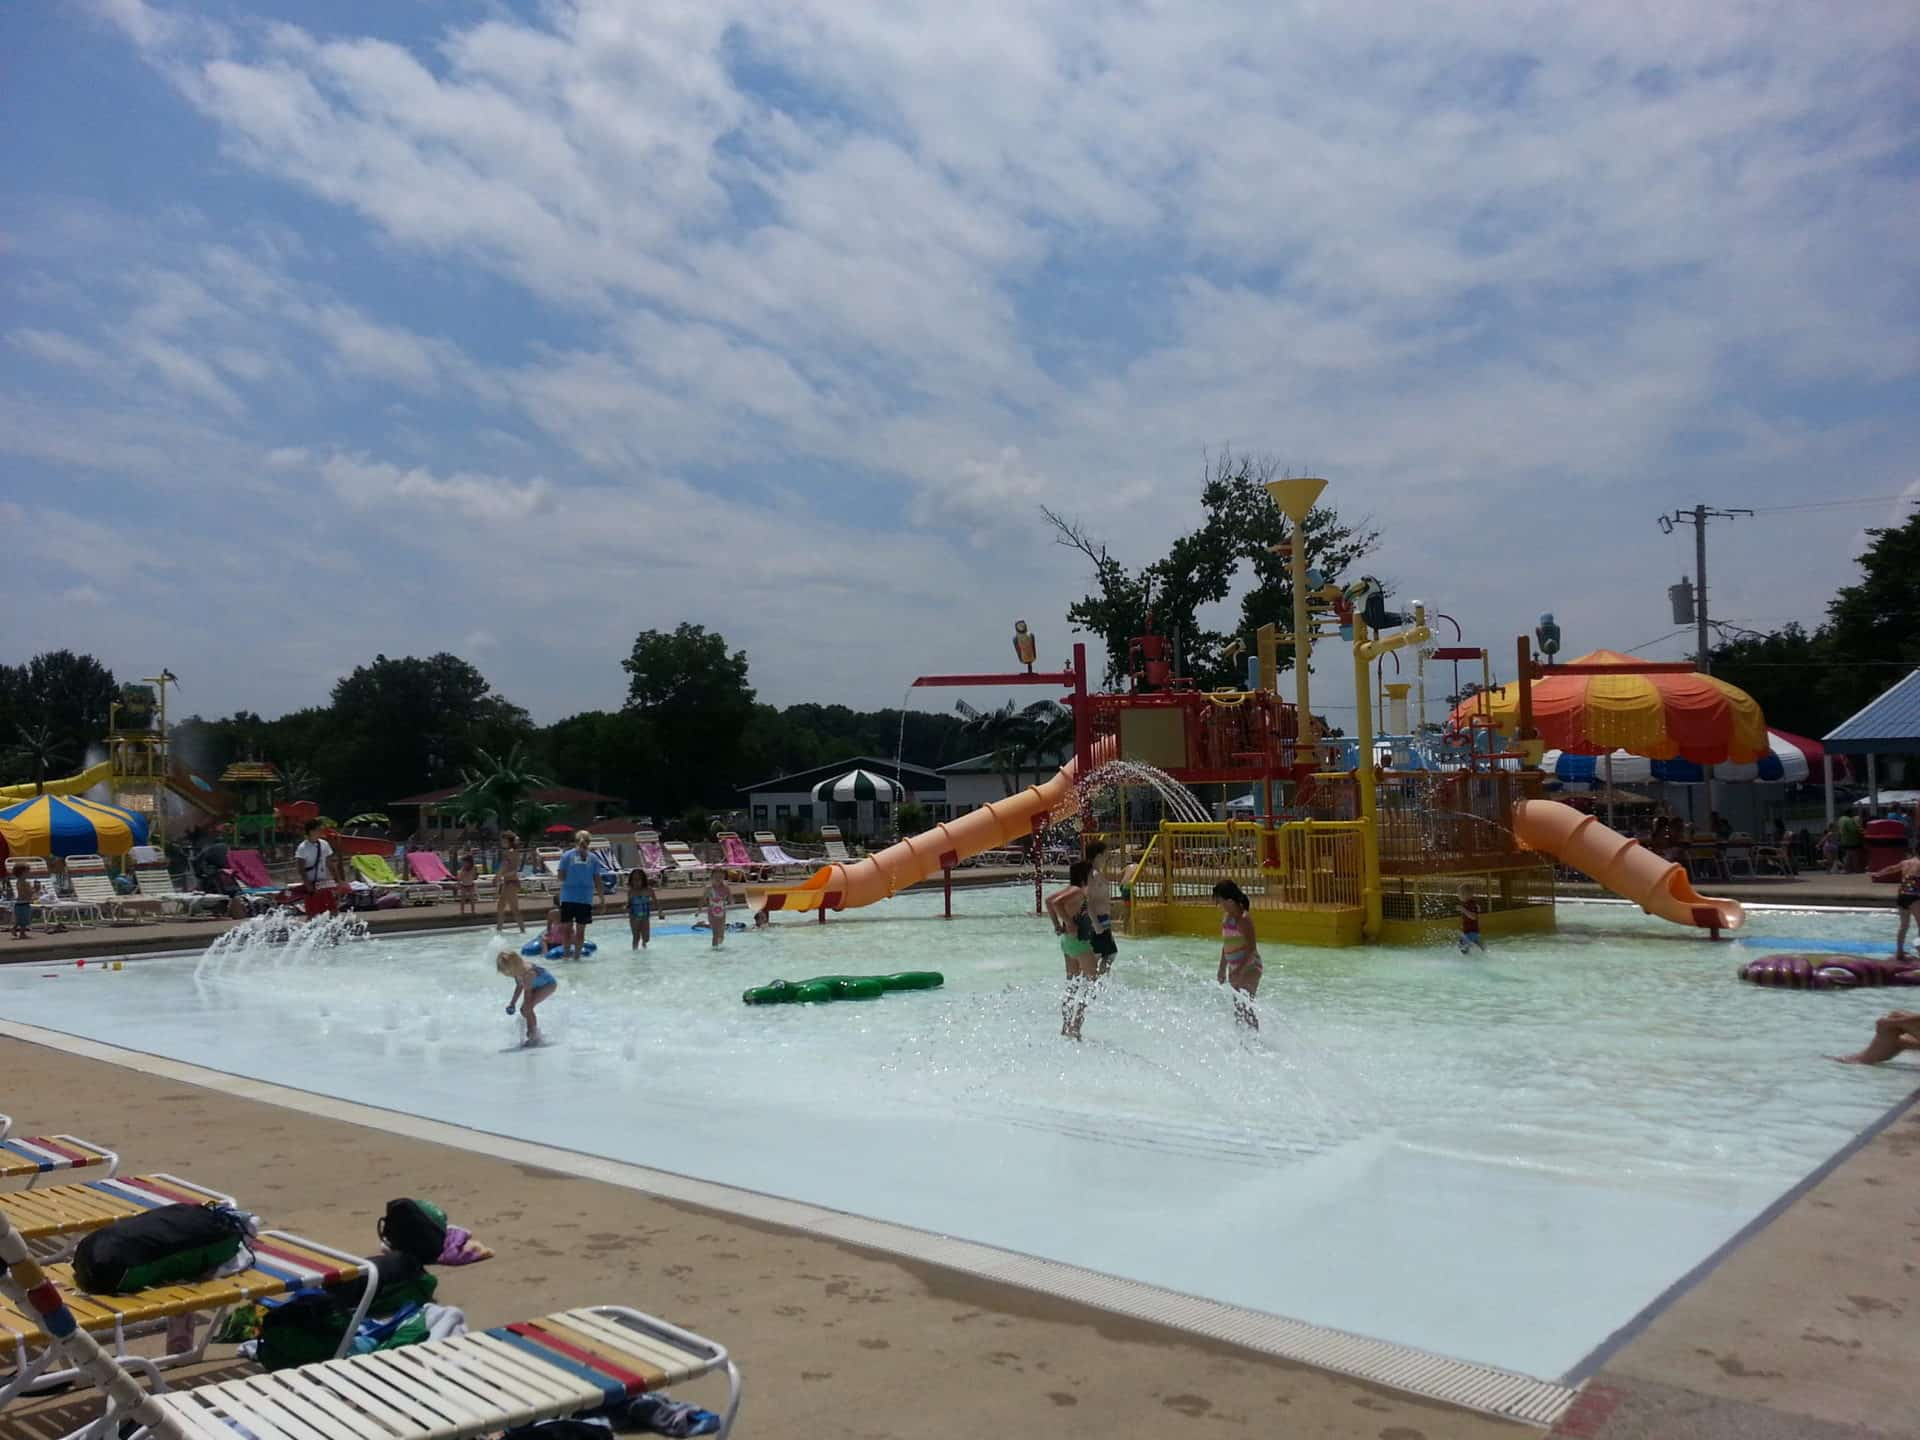 Beech Bend Park and Splash Lagoon - Slides and Fountains